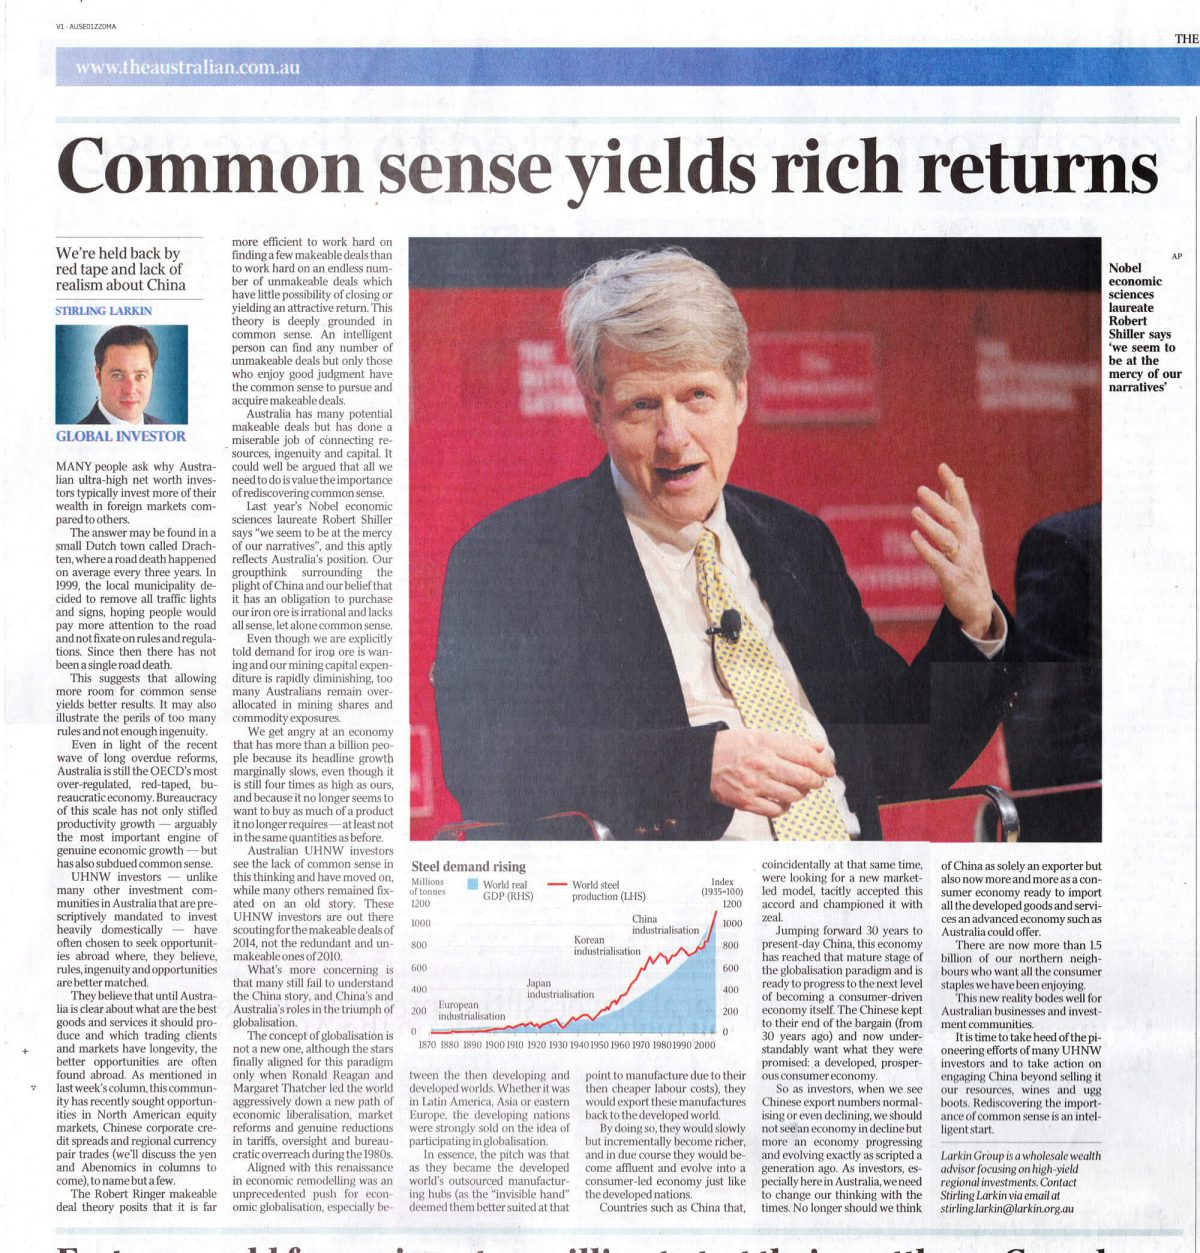 australian standfirst discusses investor education in 2014 in the australian newspaper